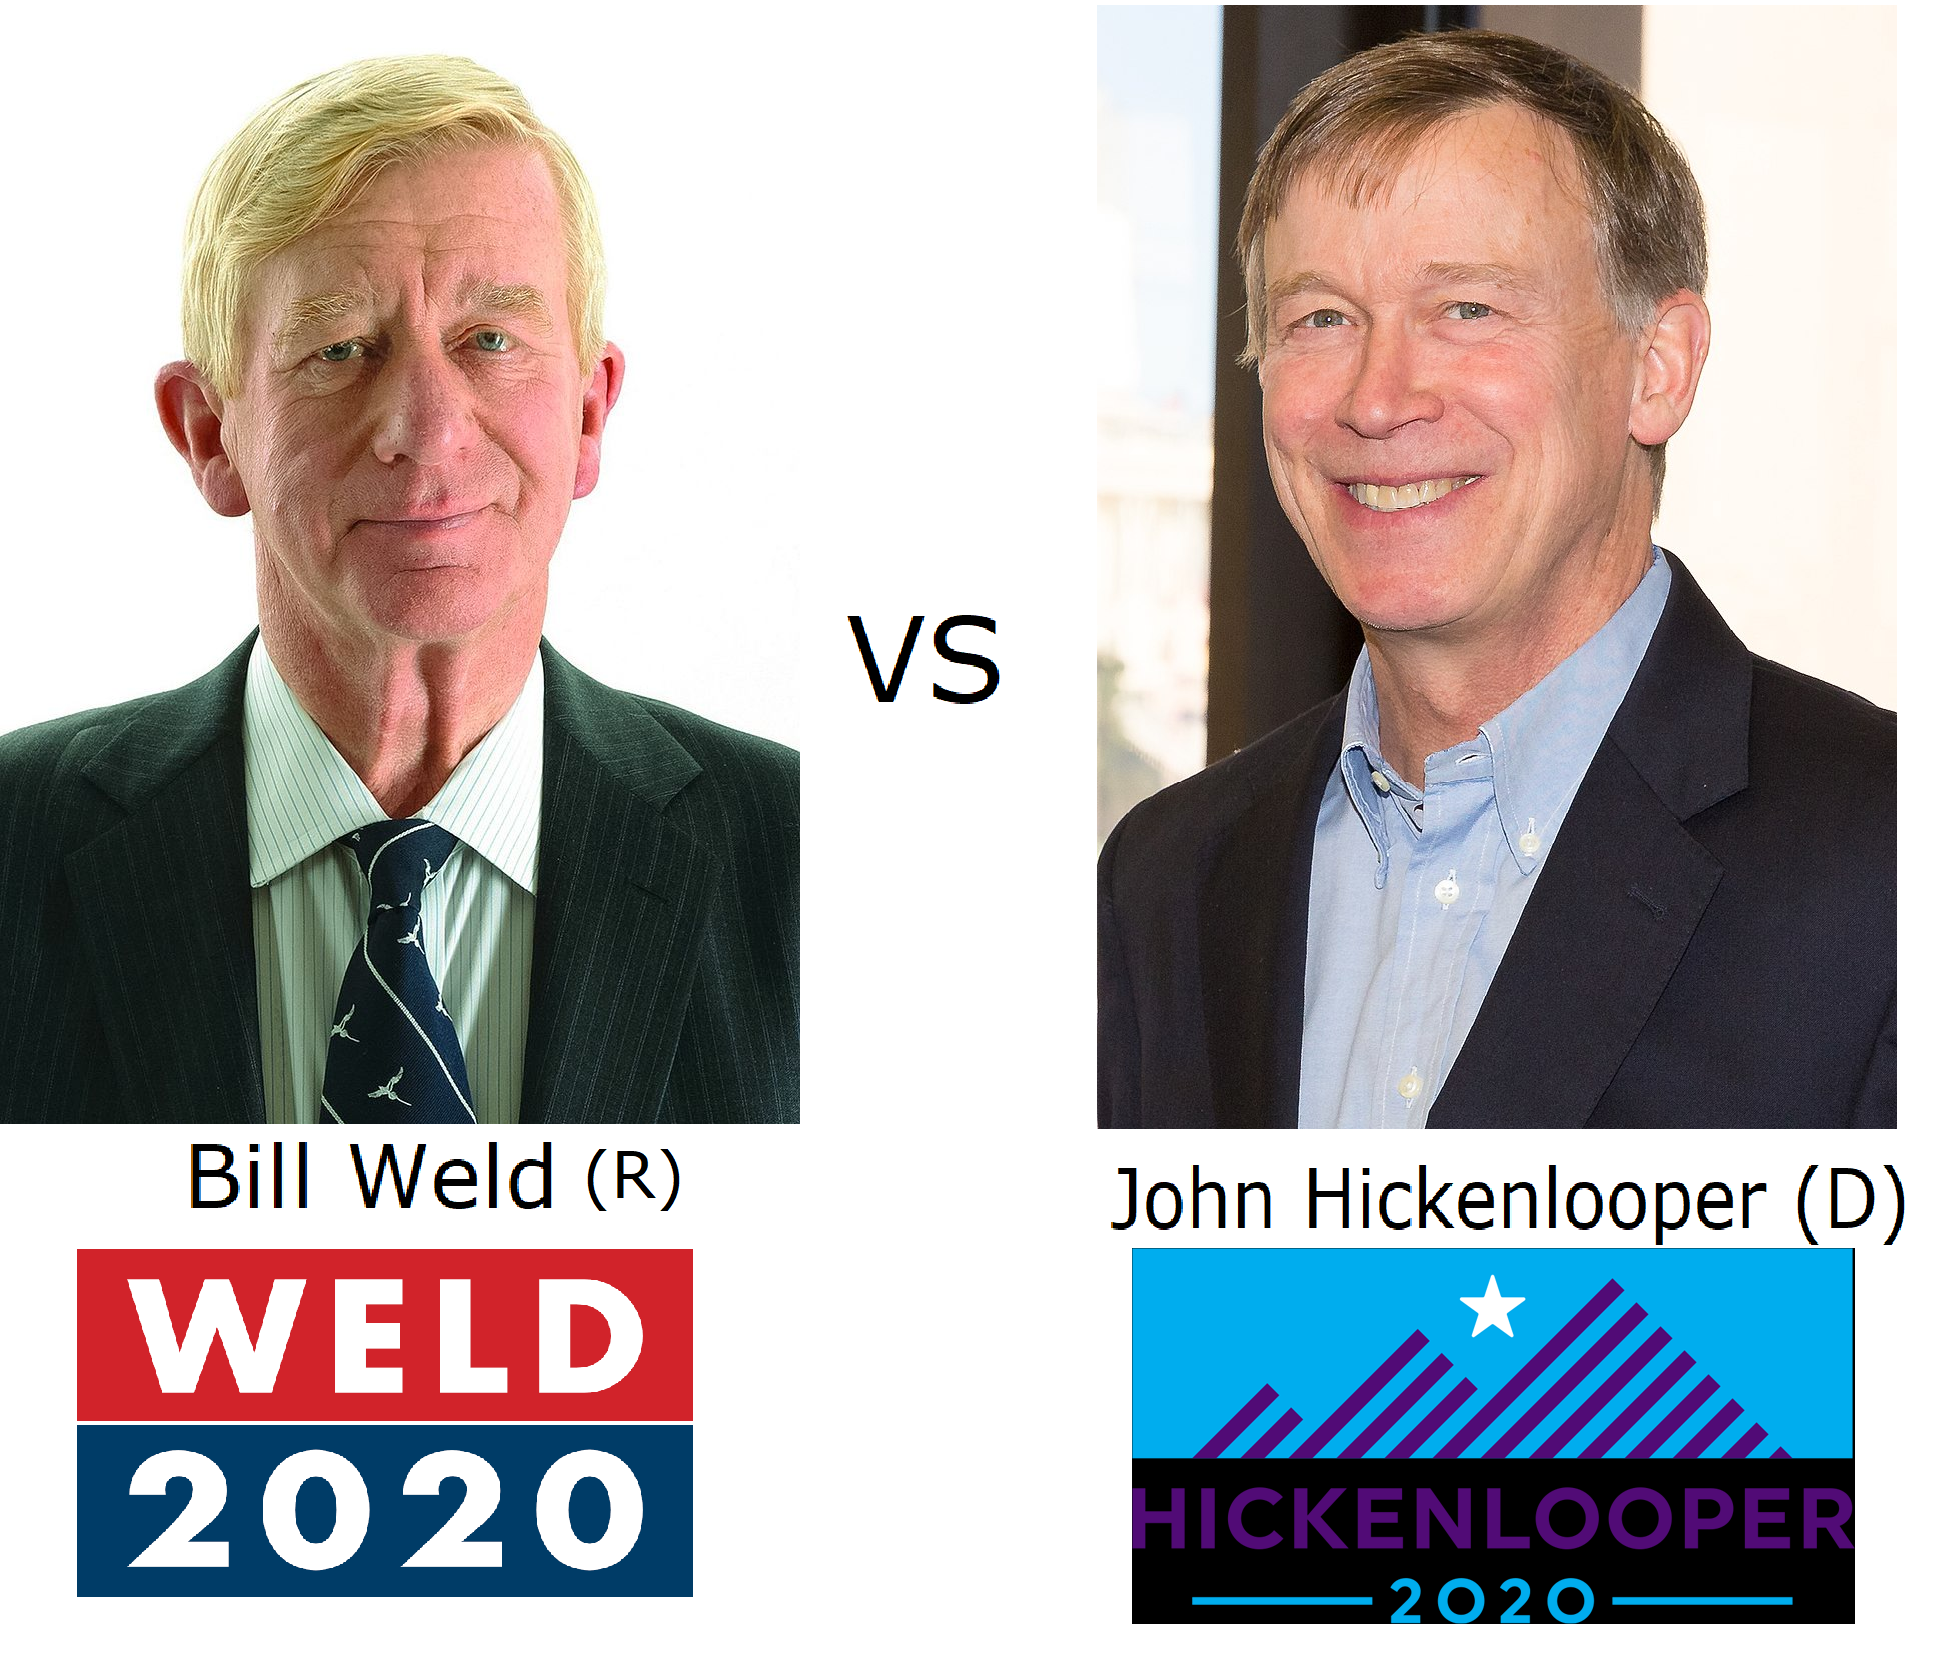 2020 US Presidential Elections (Weld Beats Trump)